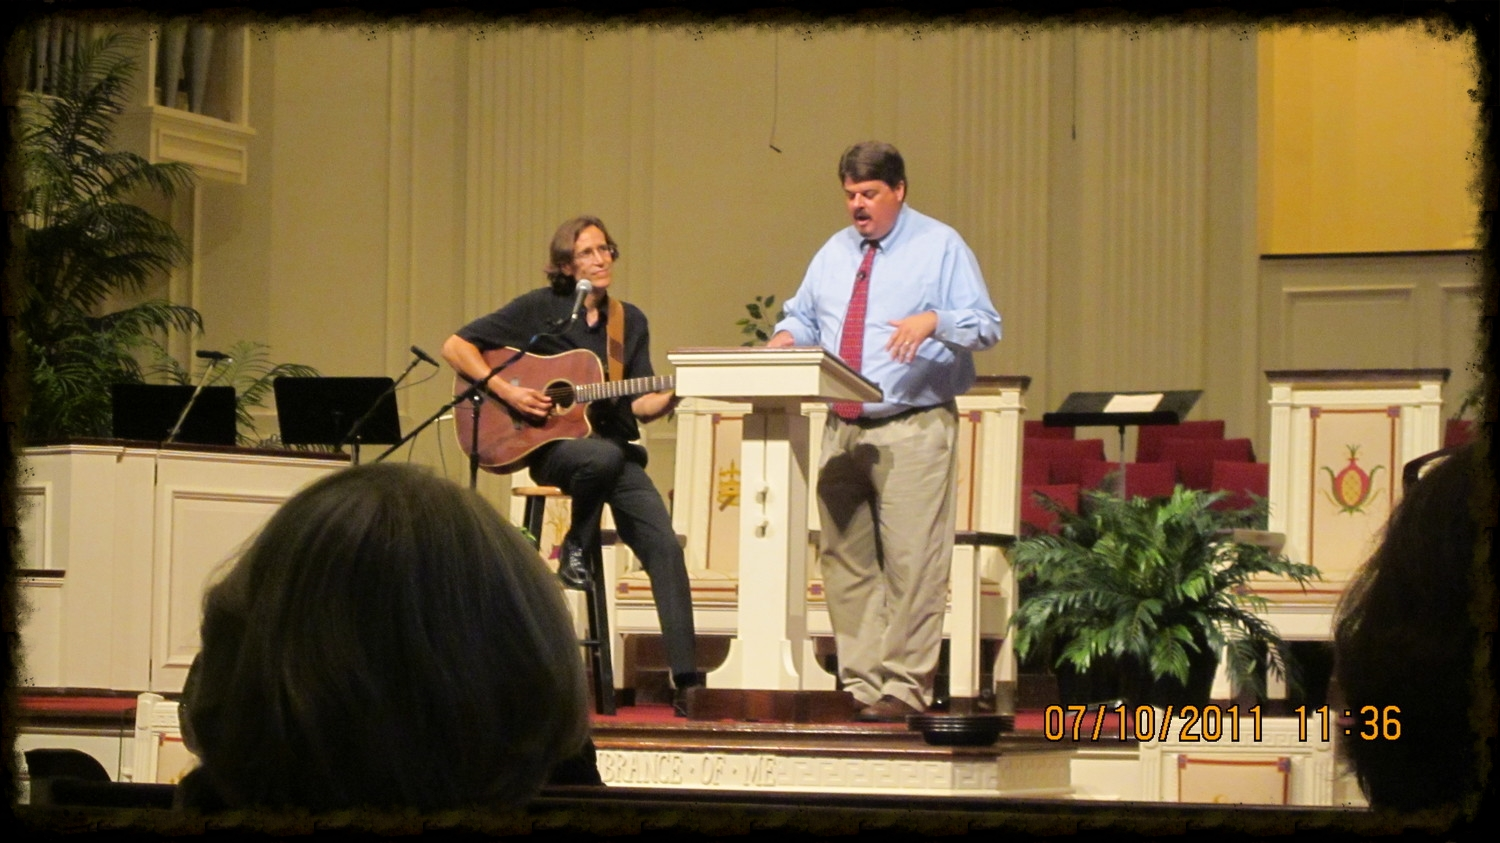 Bert at First Baptist, Memphis, with Jeno Smith on guitar.